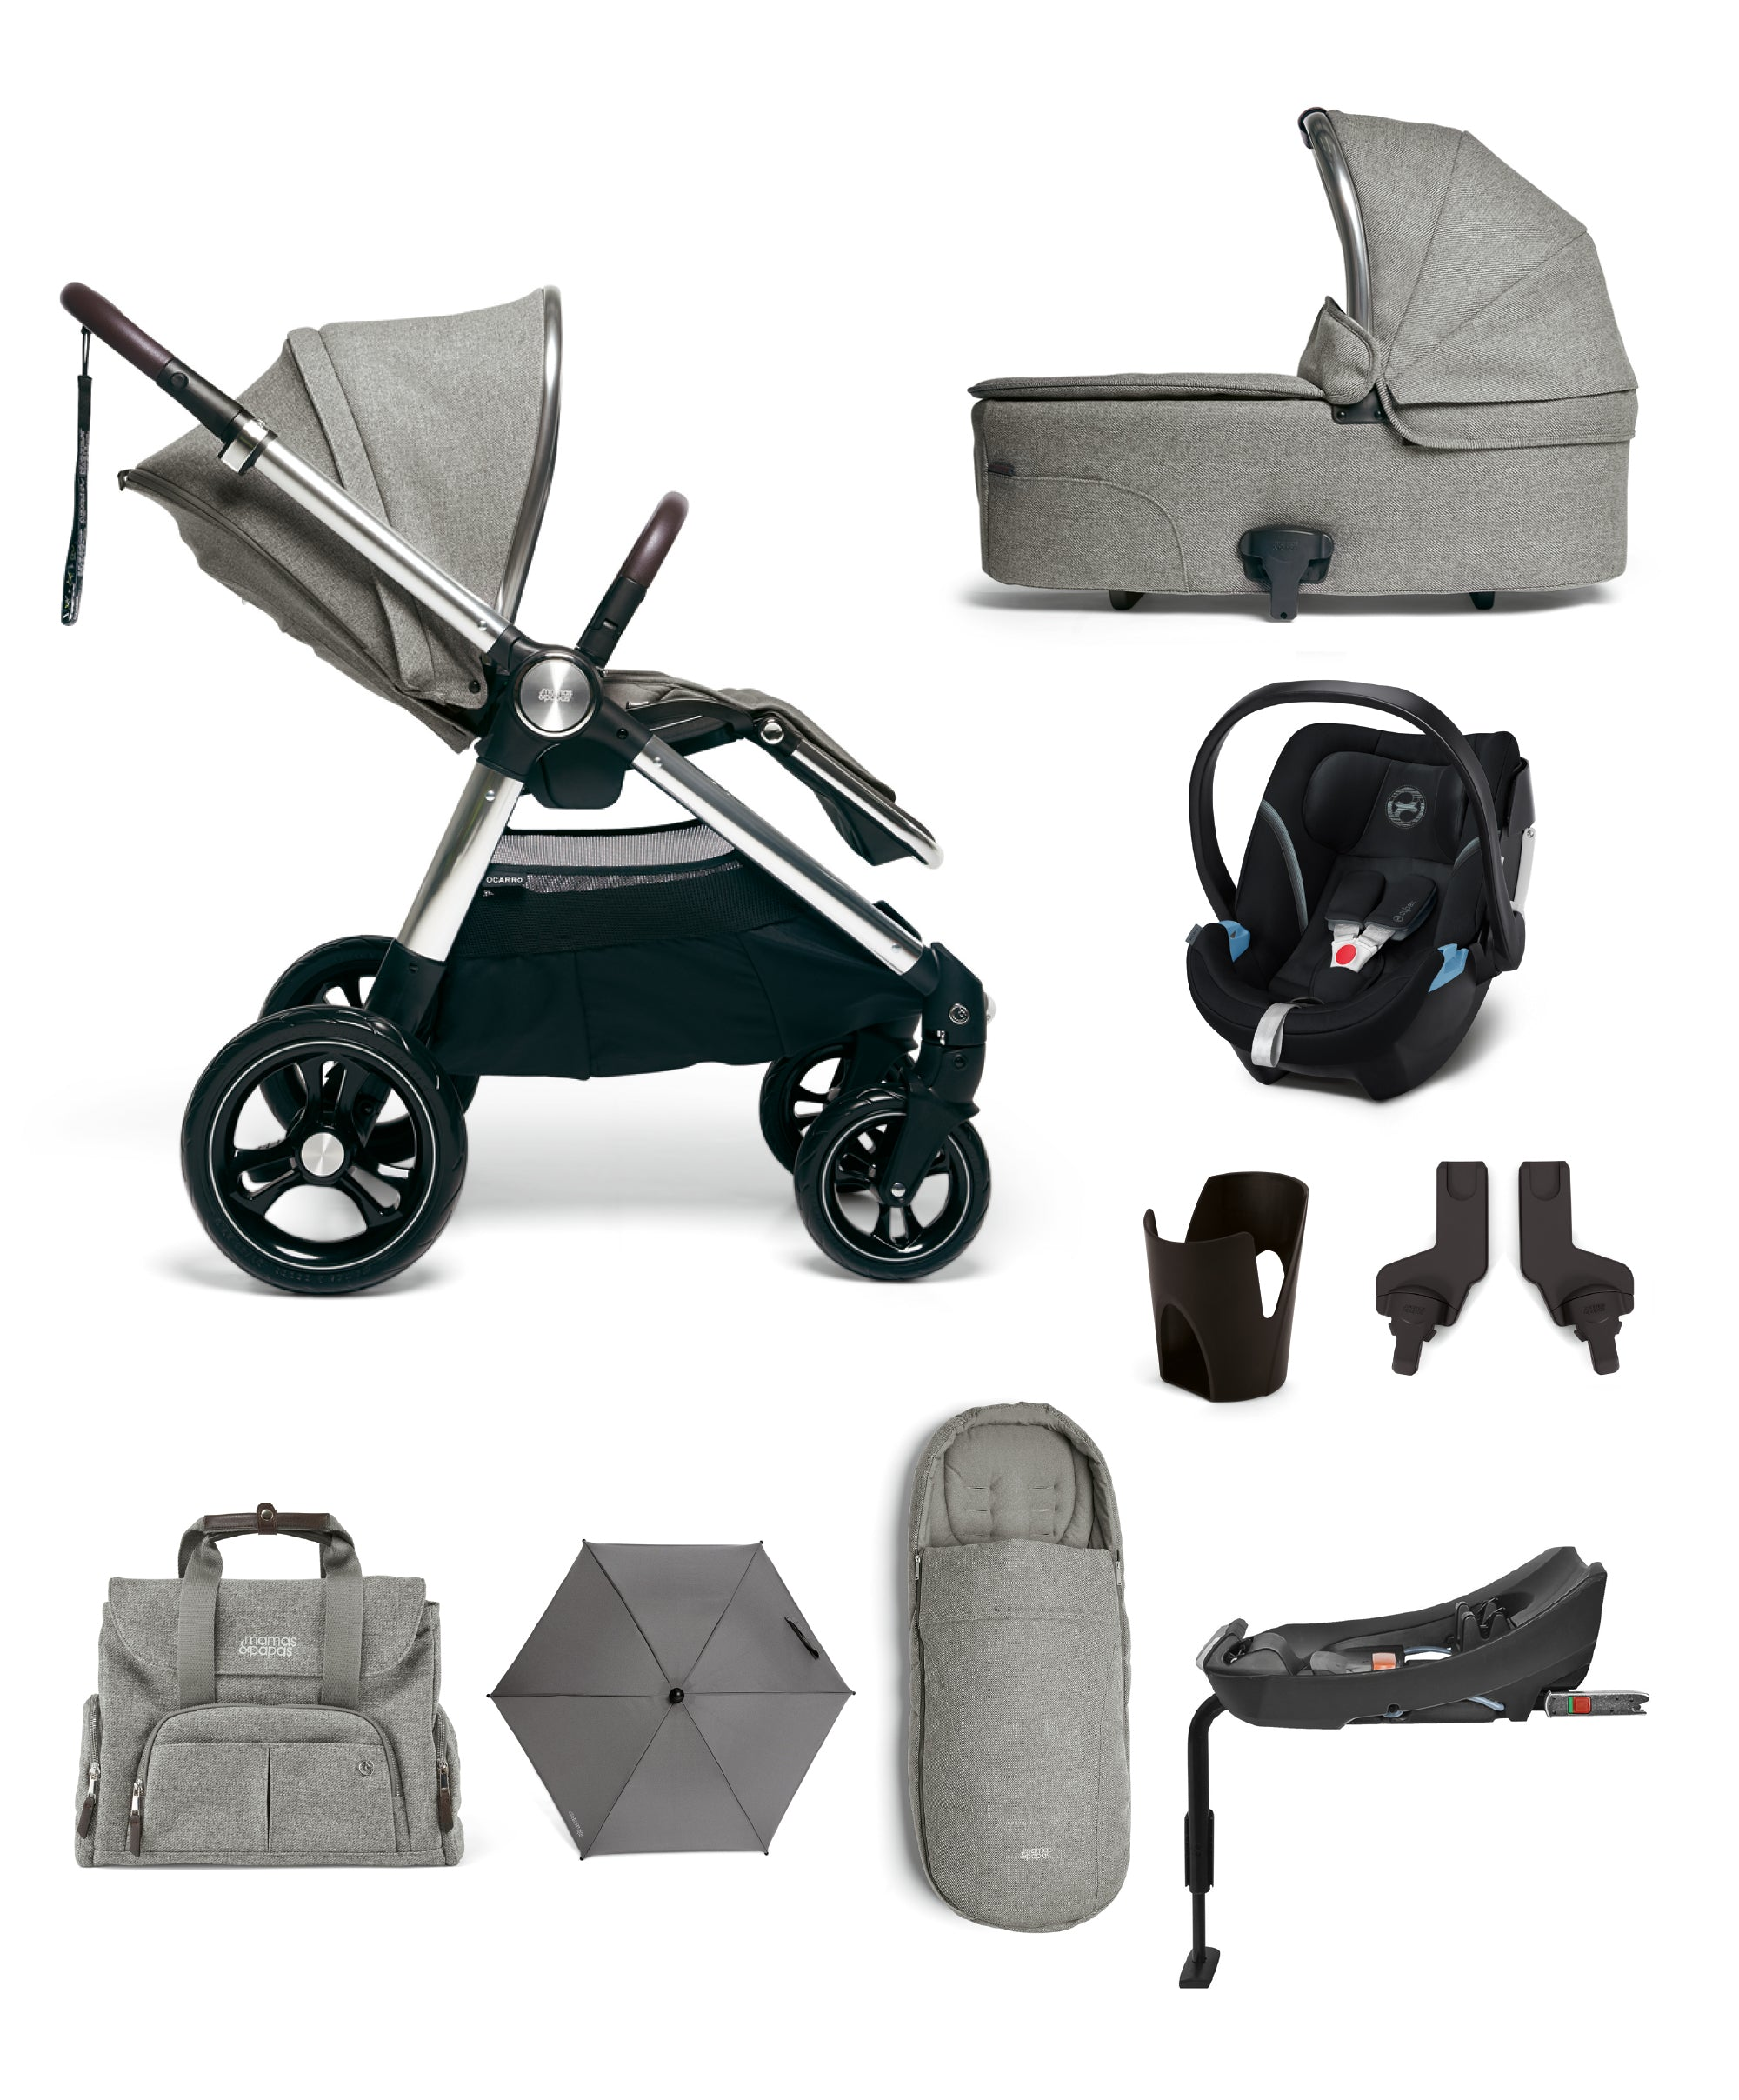 Ocarro Complete (Inc Pushchair/Bear/Blanket, Carrycot, Adaptors, Cupholder, Bag, Footmuff, Parasol, Aton 5 & Isofix Base)